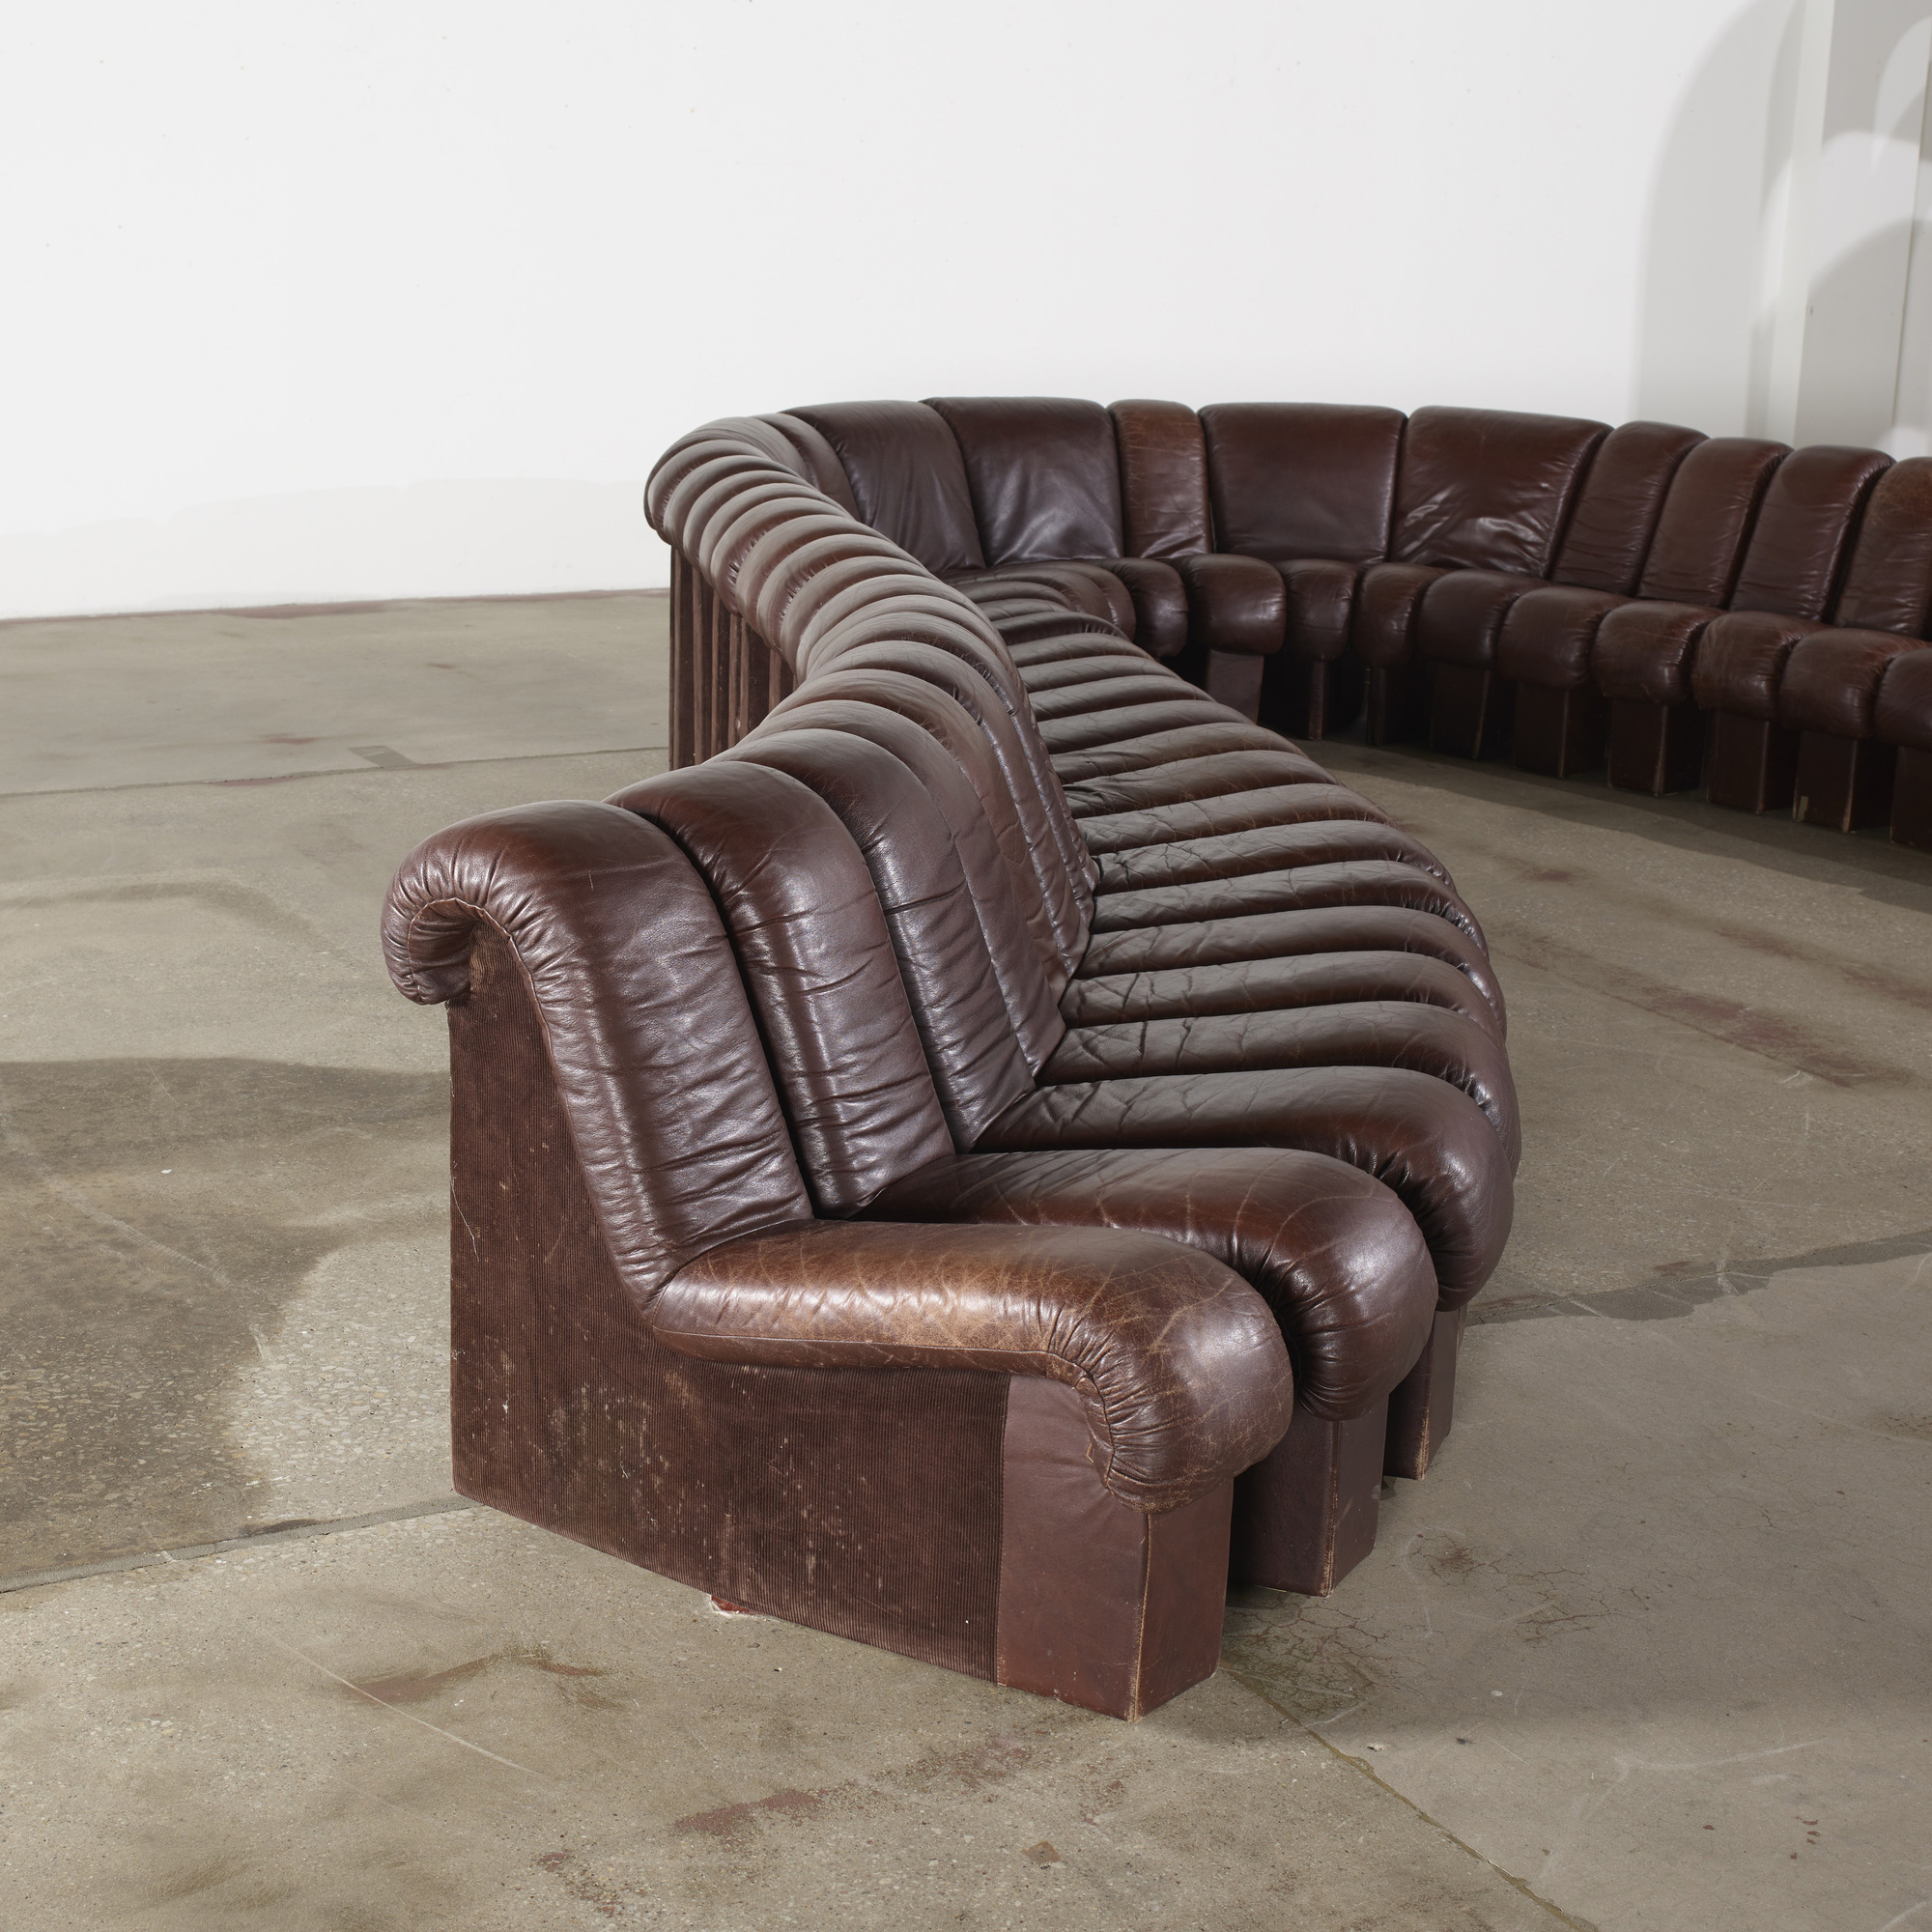 241: Ueli Berger, Eleanora Peduzzi Riva And Heinz Ulrich / Monumental DS  600 Organic Sofa (2 Of 2)